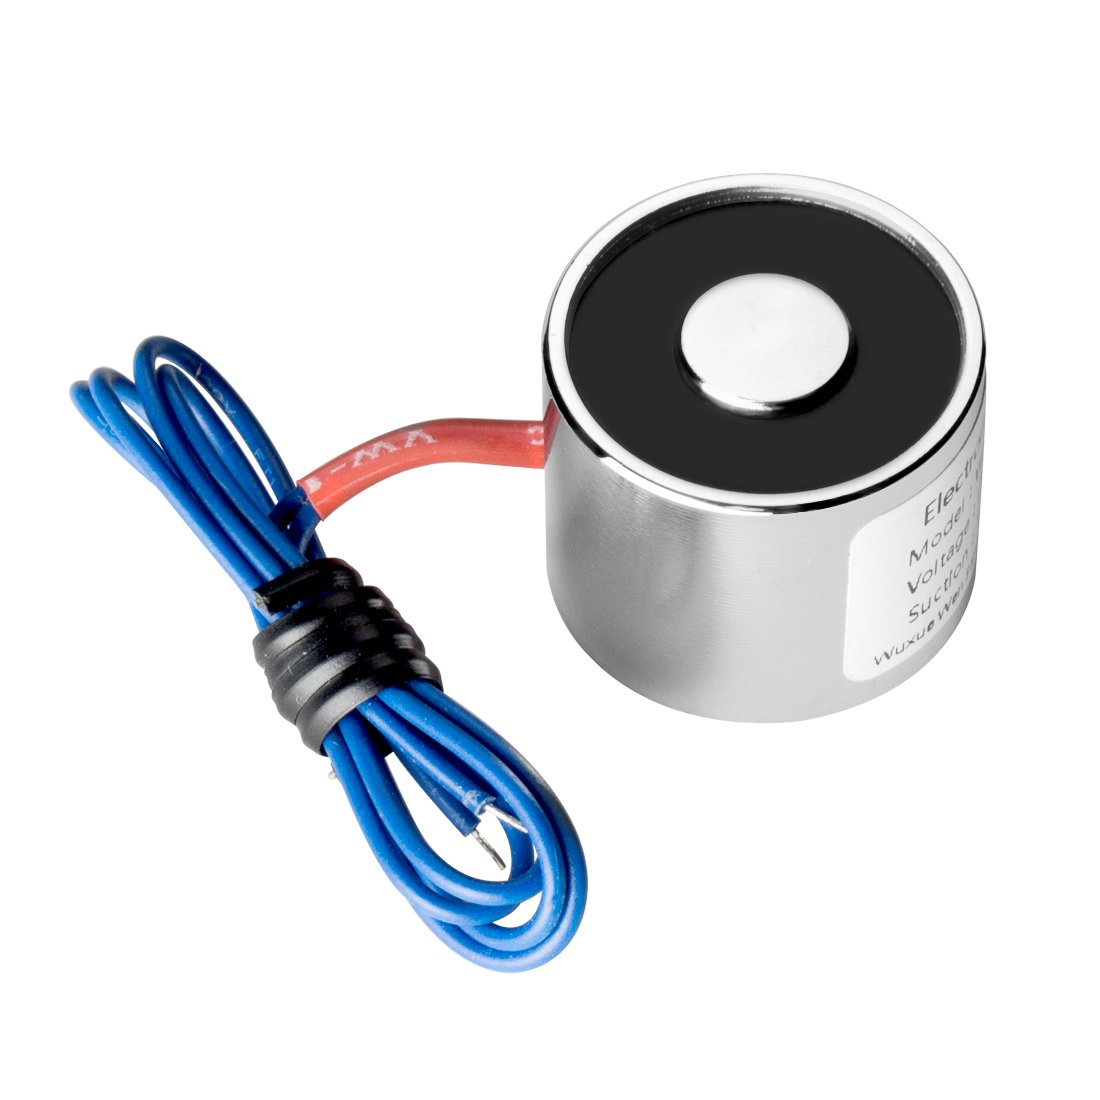 uxcell 12V 25N Electric Lifting Magnet Electromagnet Solenoid Lift Holding